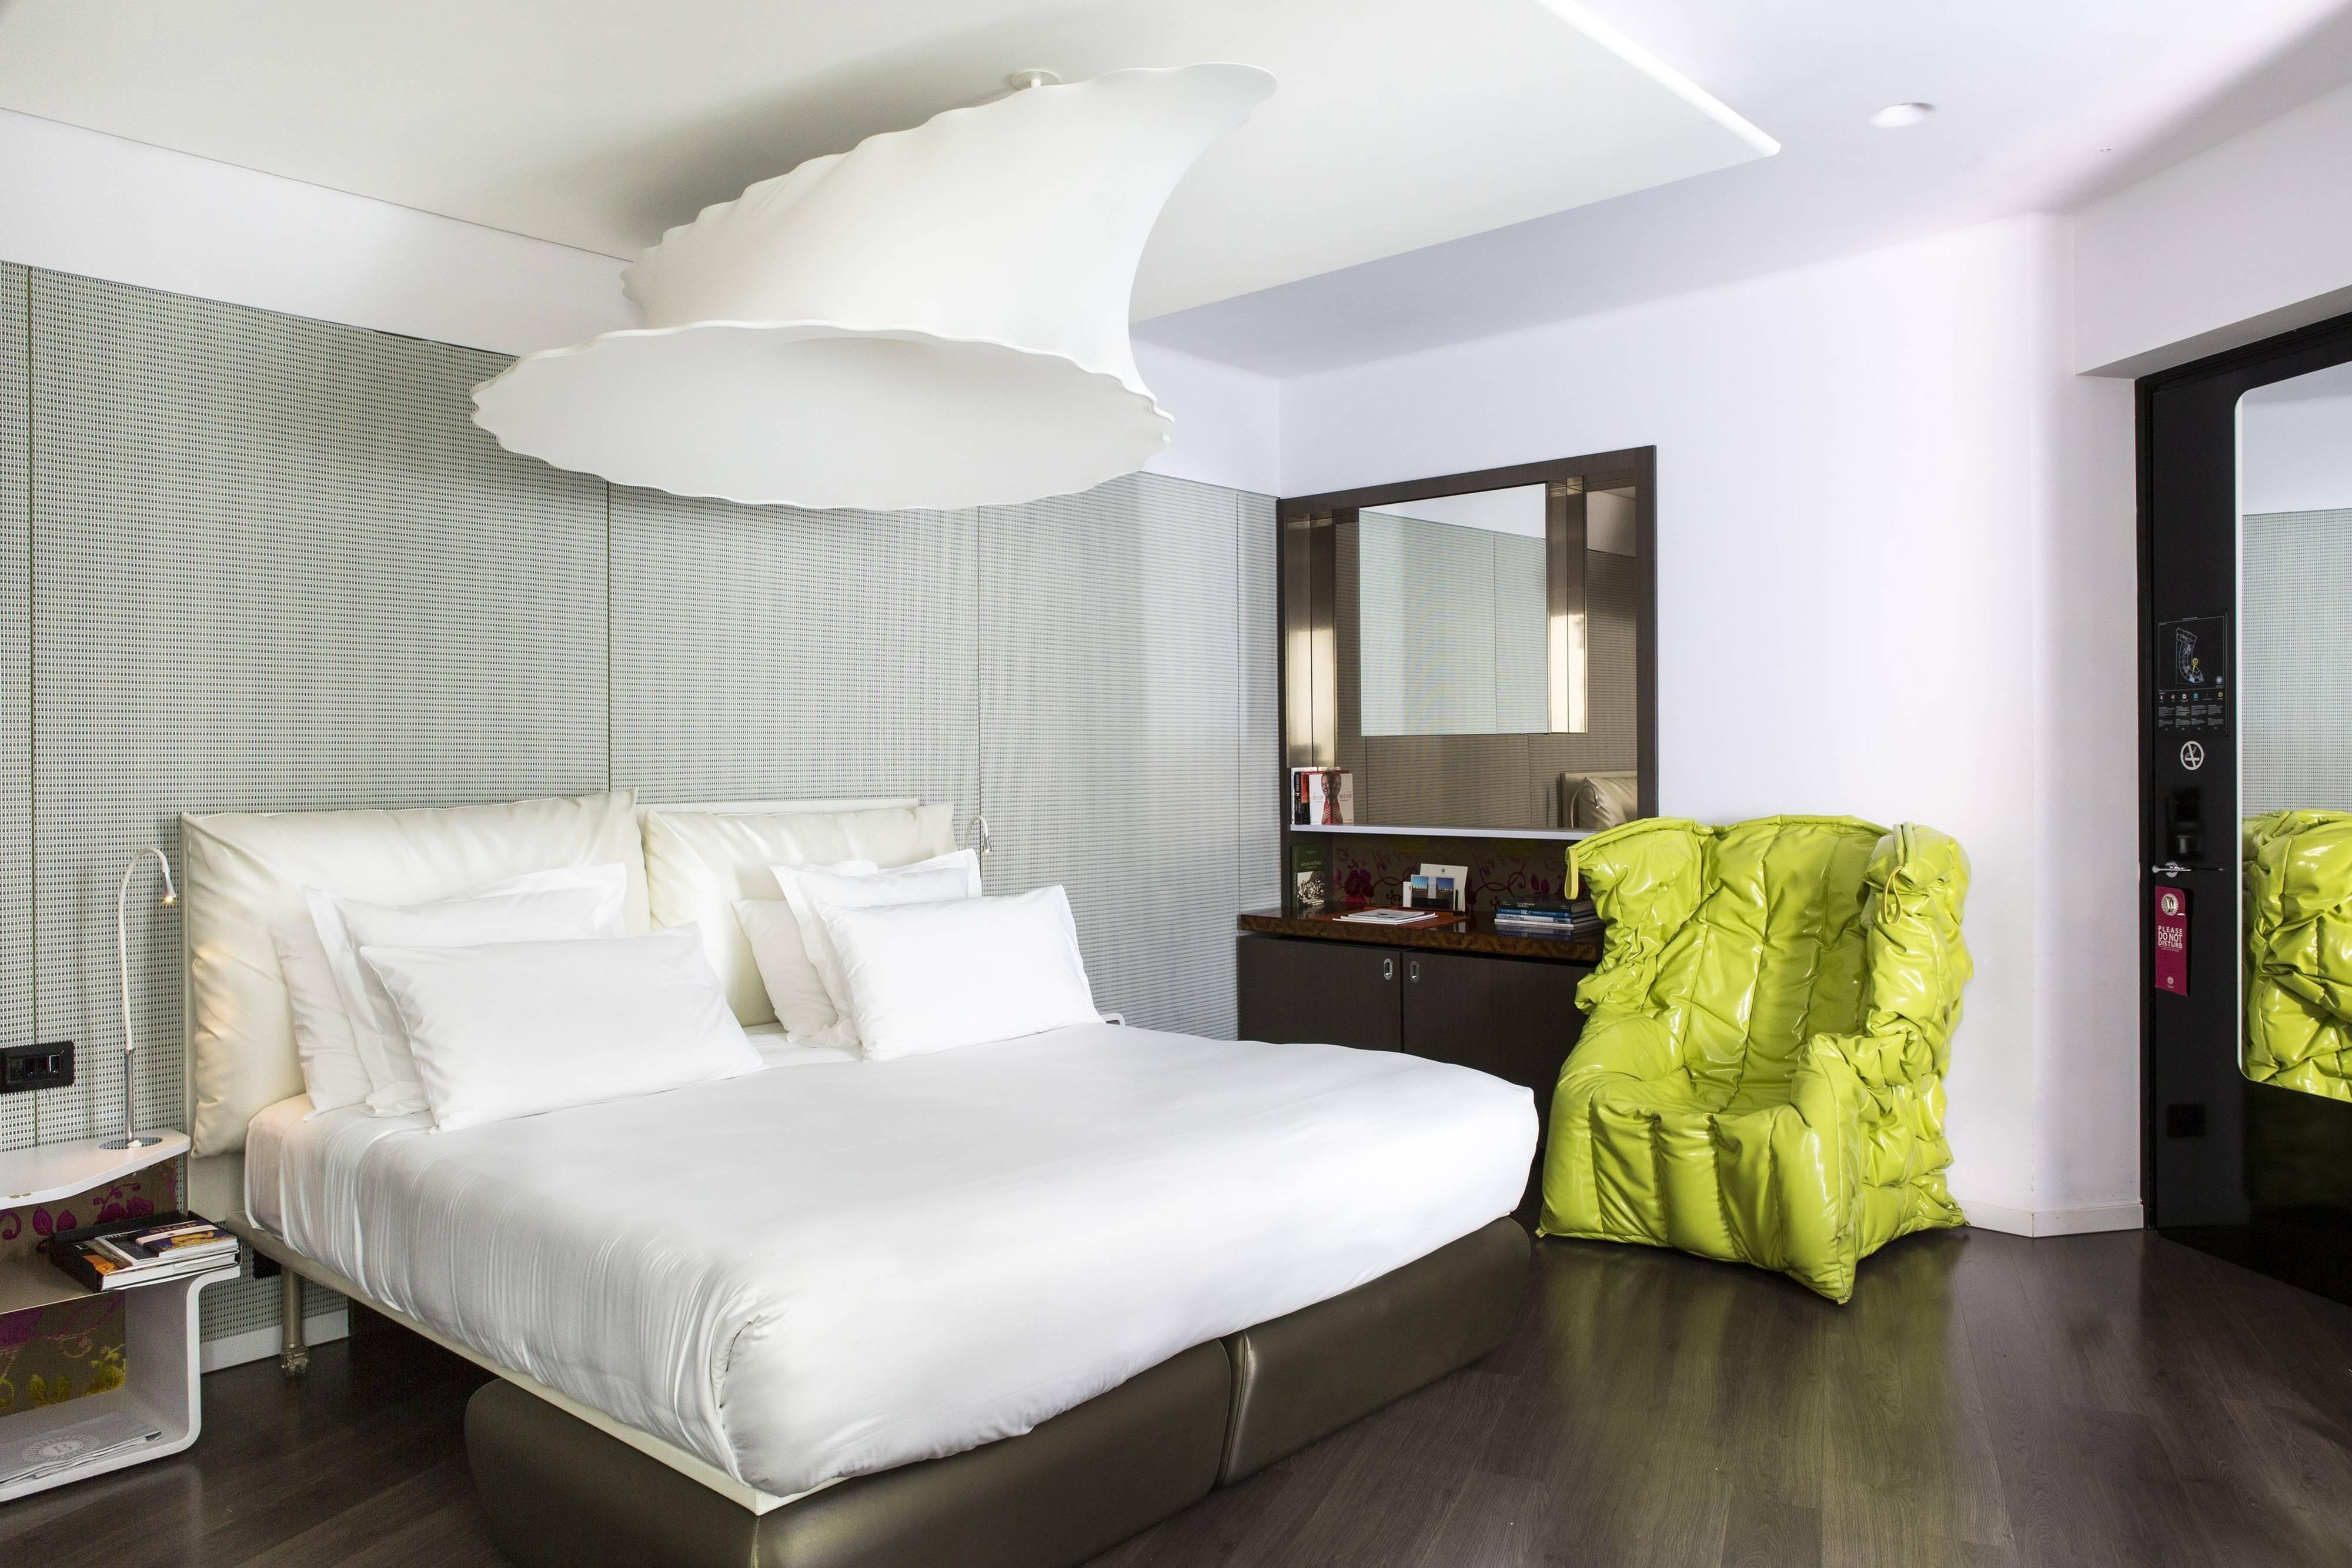 Classic Guest Room - Twin beds